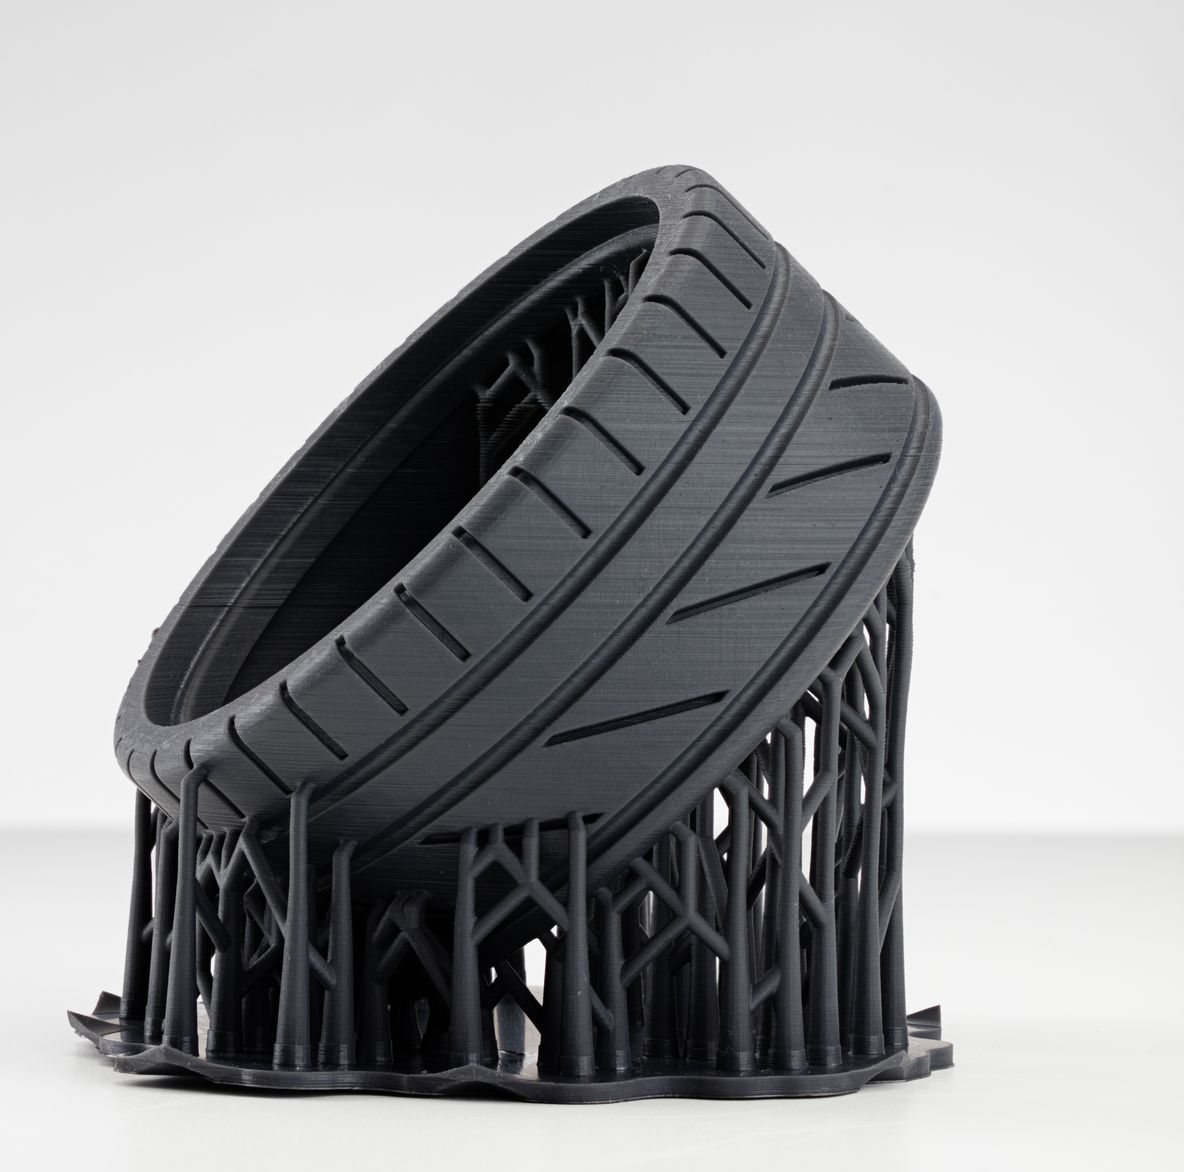 Flexible Tire